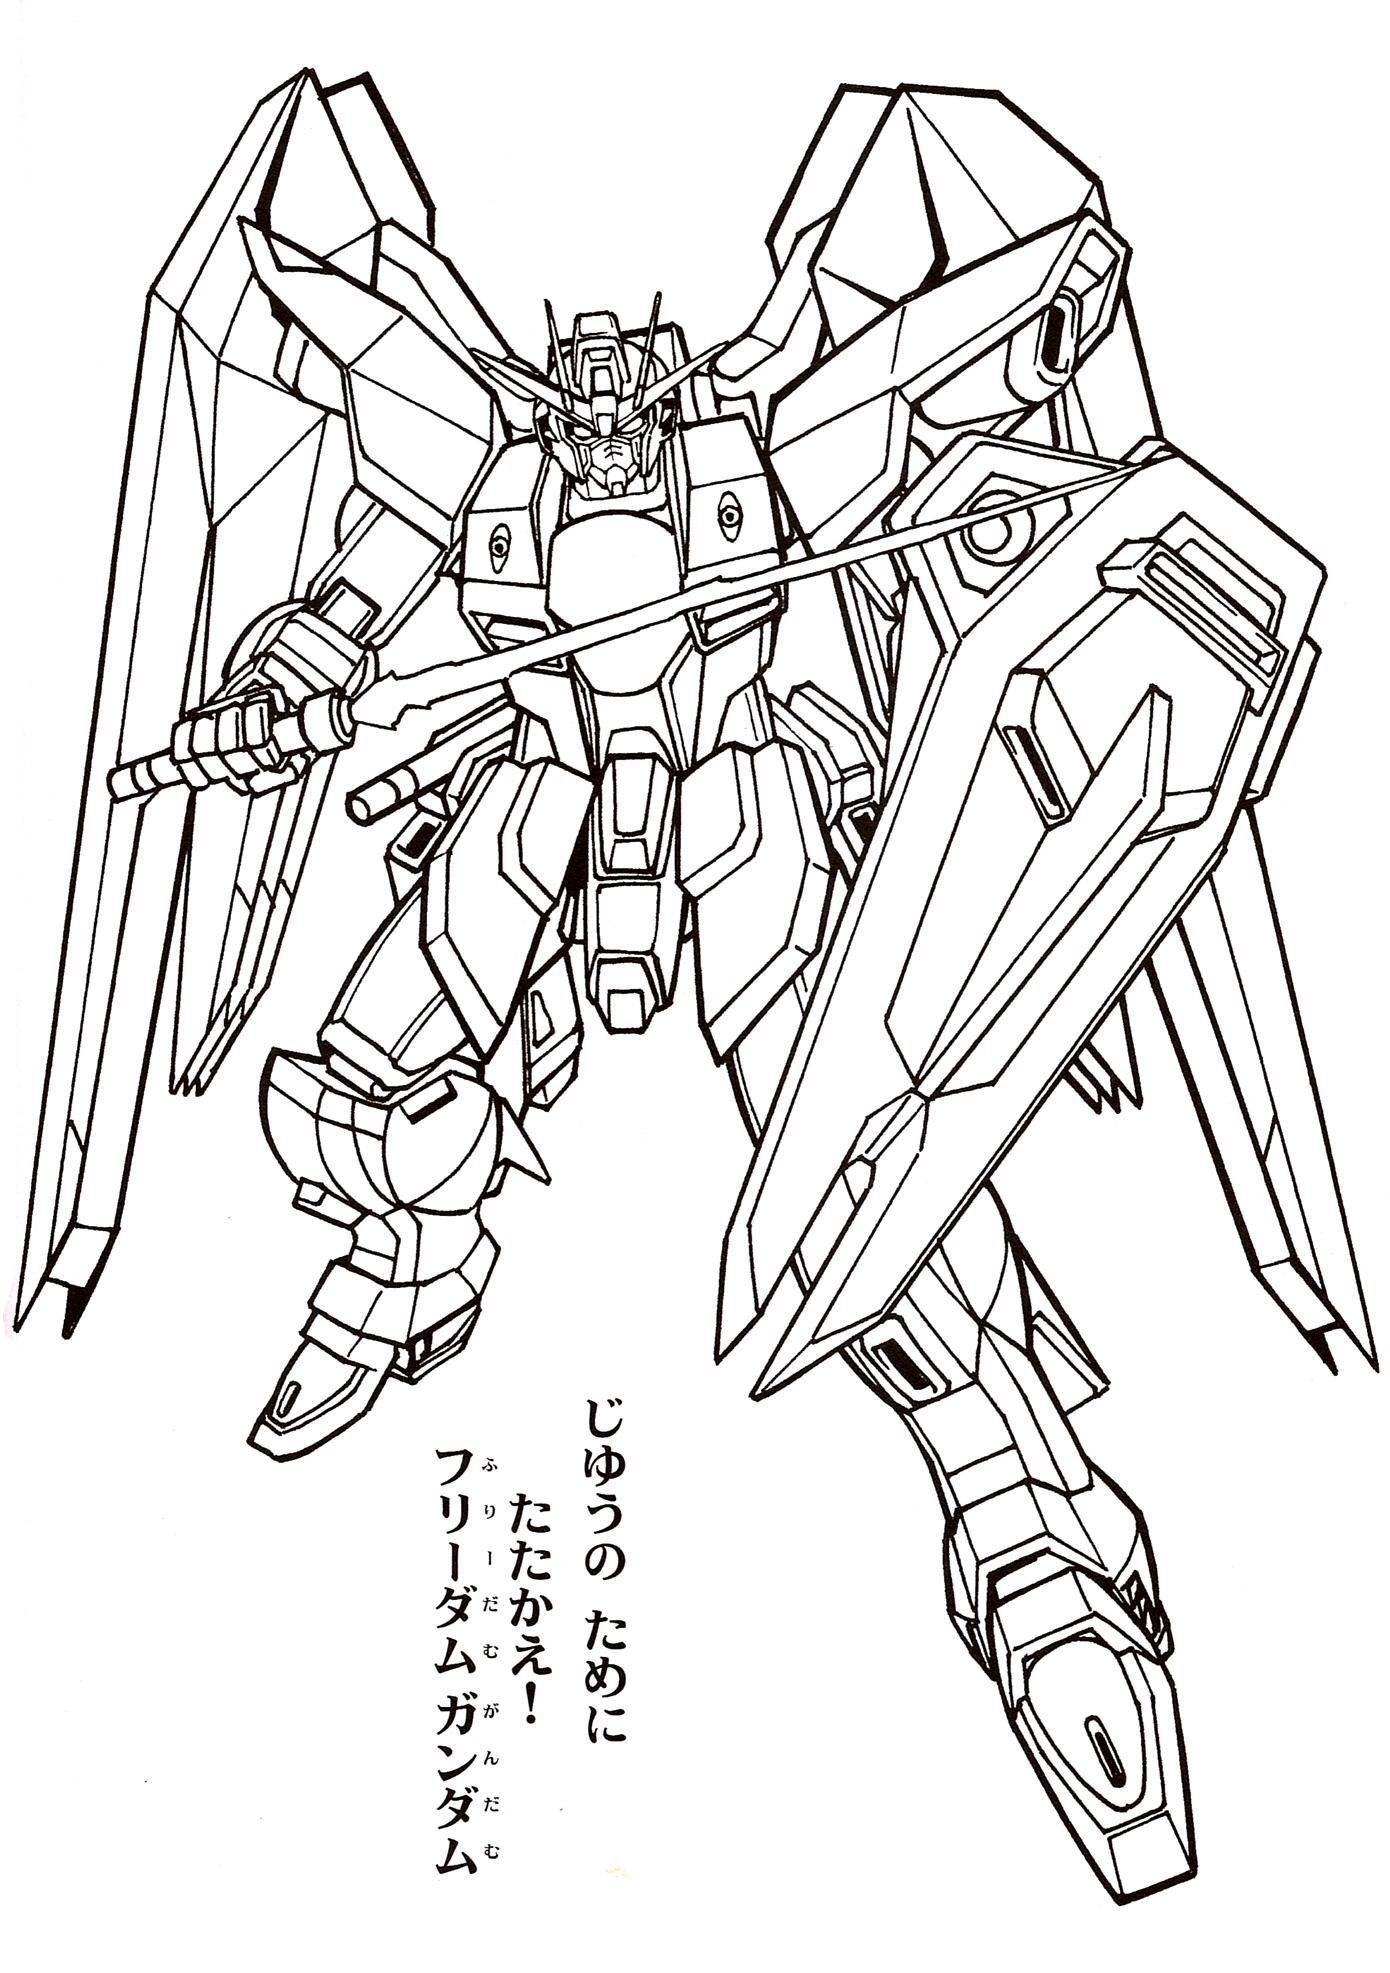 Gundam Coloring Pages - Learny Kids